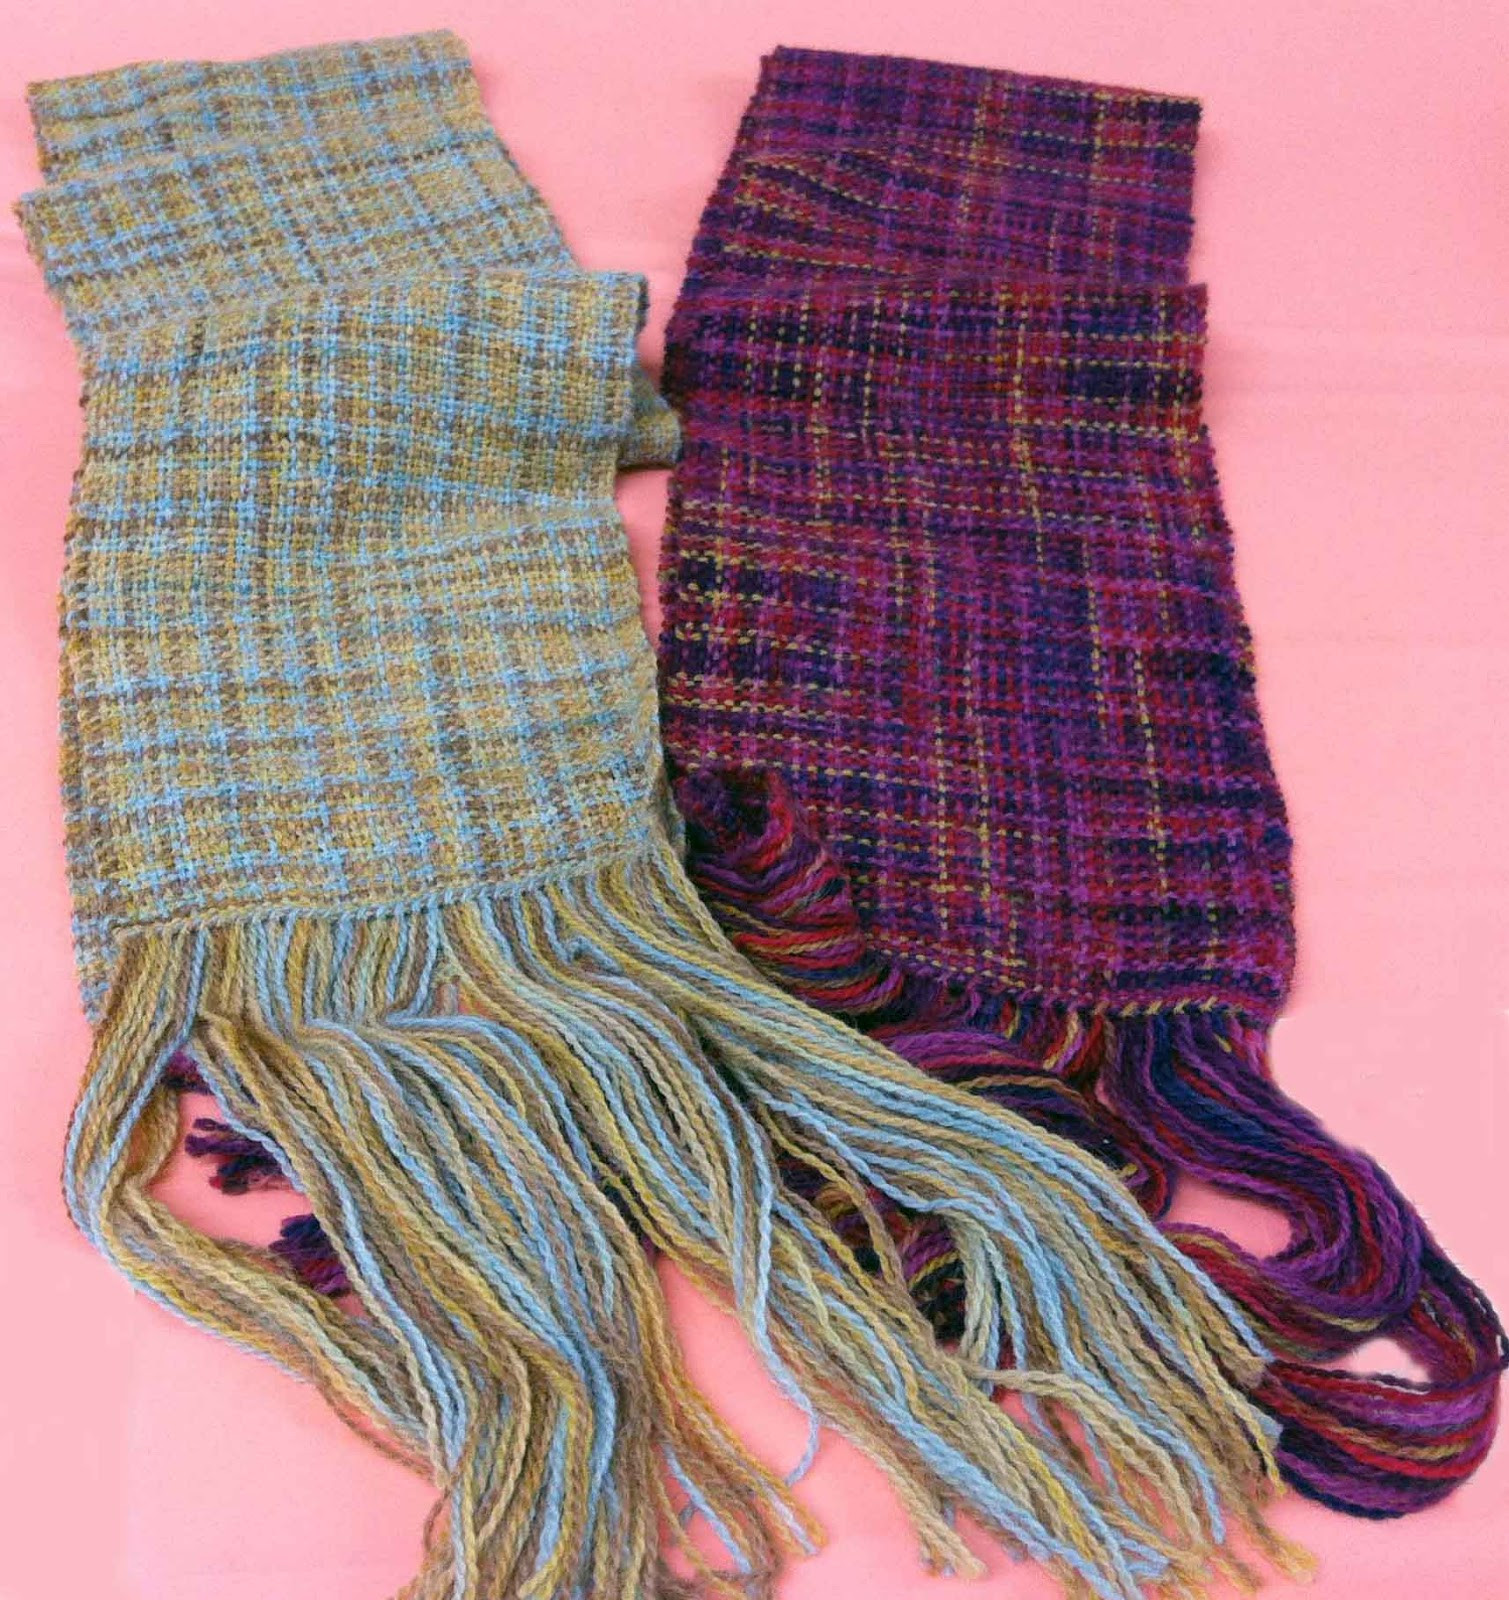 Best Of Not 2 Square Weavers Knitting Yarns Into Handwoven Scarves Yarn Scarf Of Attractive 49 Photos Yarn Scarf